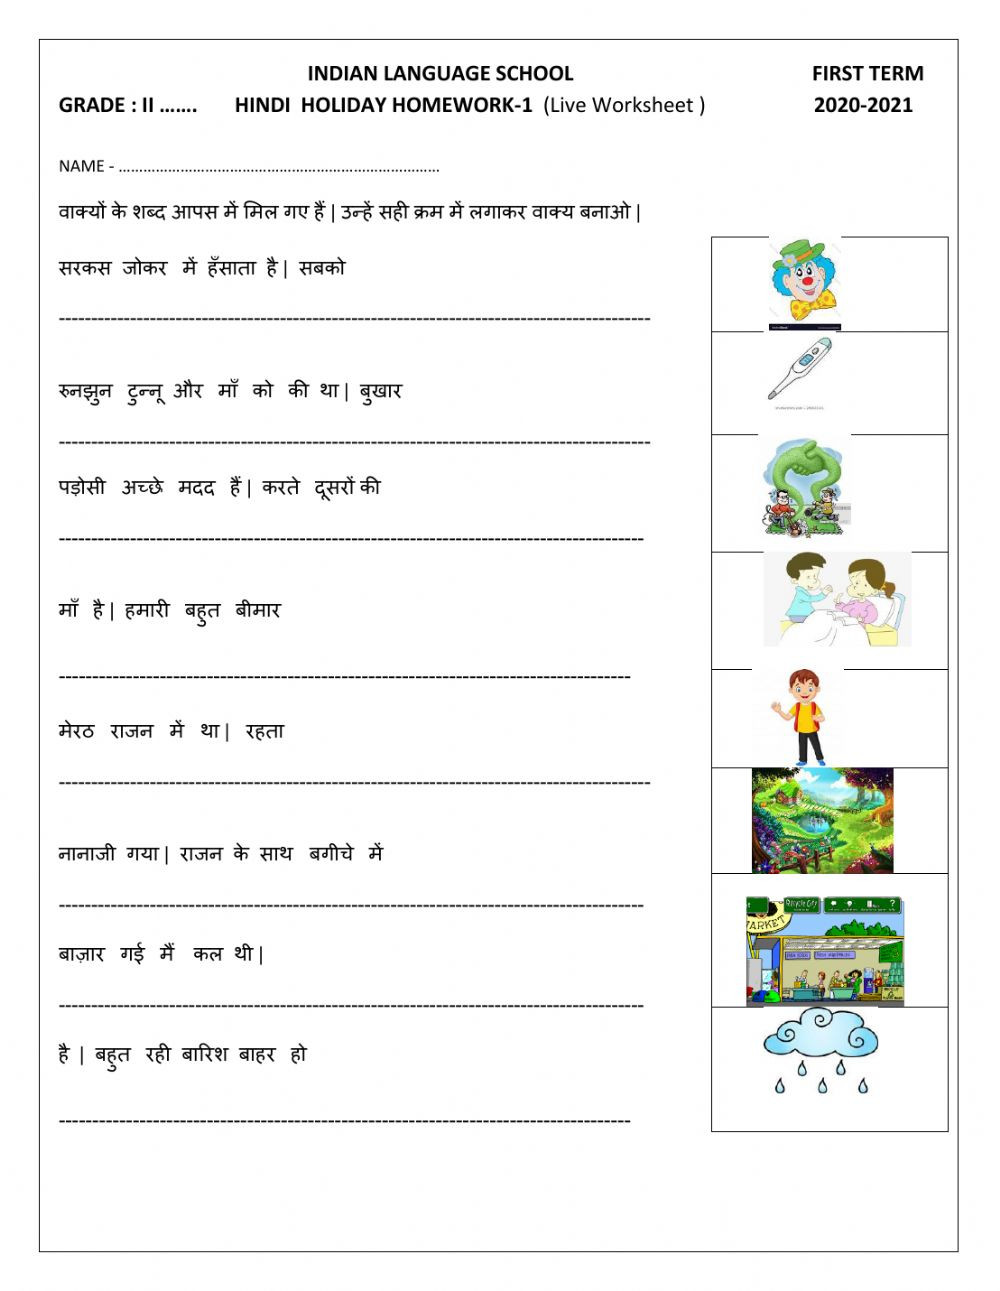 Scrambled Sentences Worksheets 2nd Grade Worksheets Jumbled Sentences Grade 2